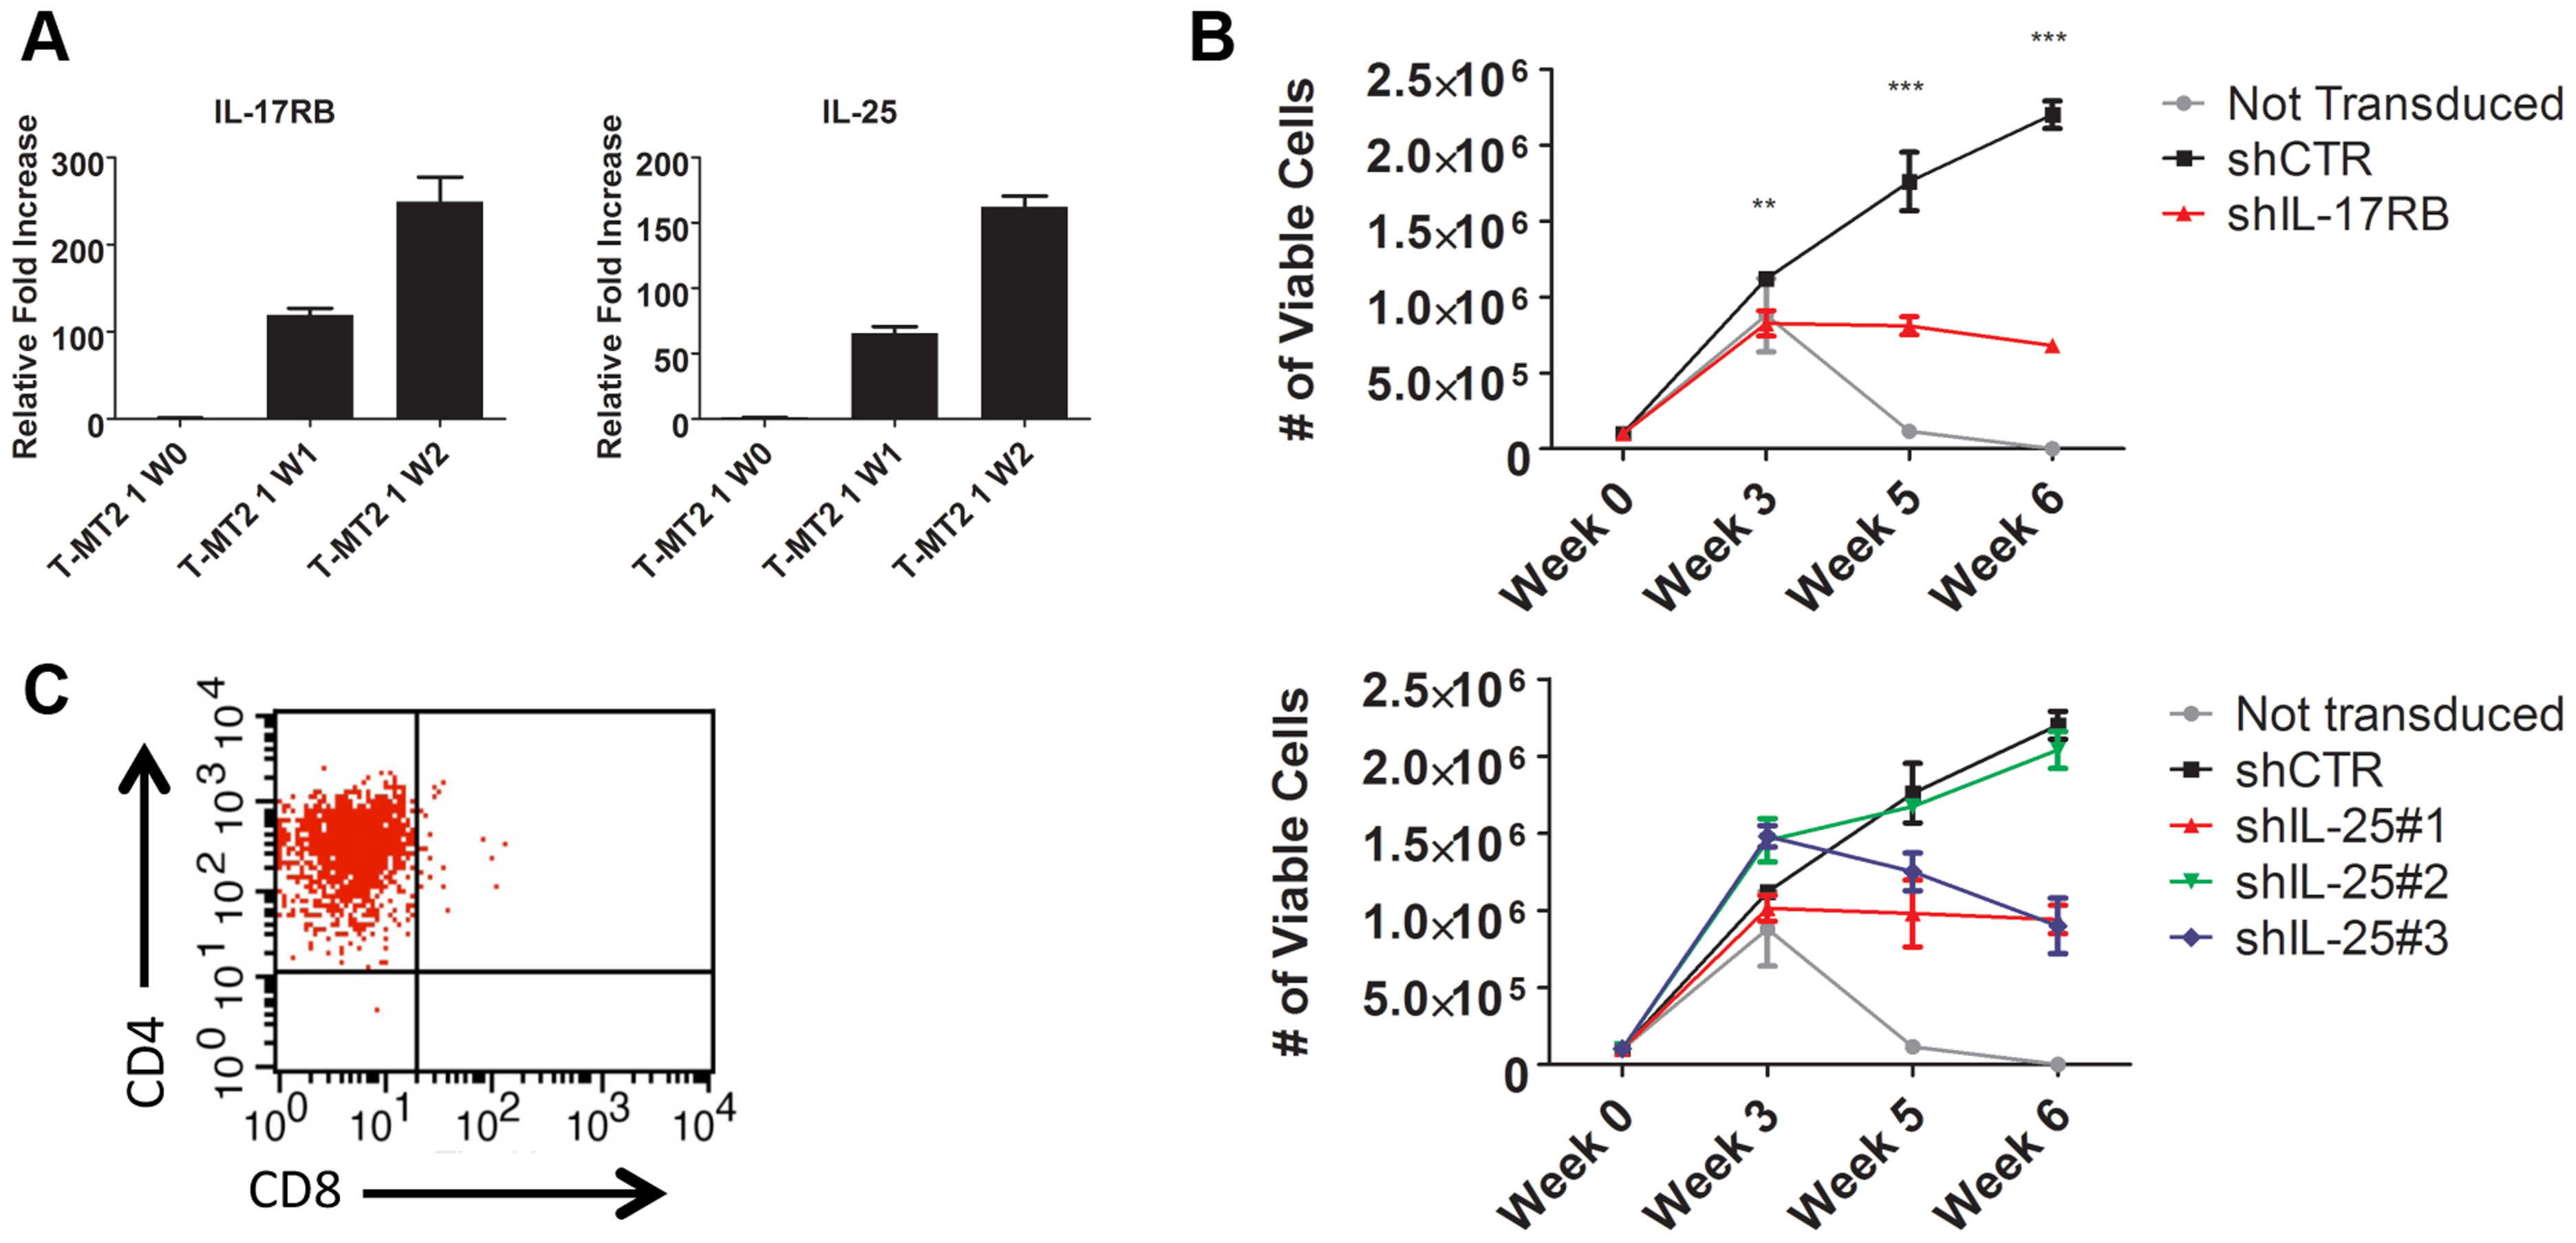 IL-17RB and IL-25 are essential for the HTLV-1-induced immortalization of T cells.